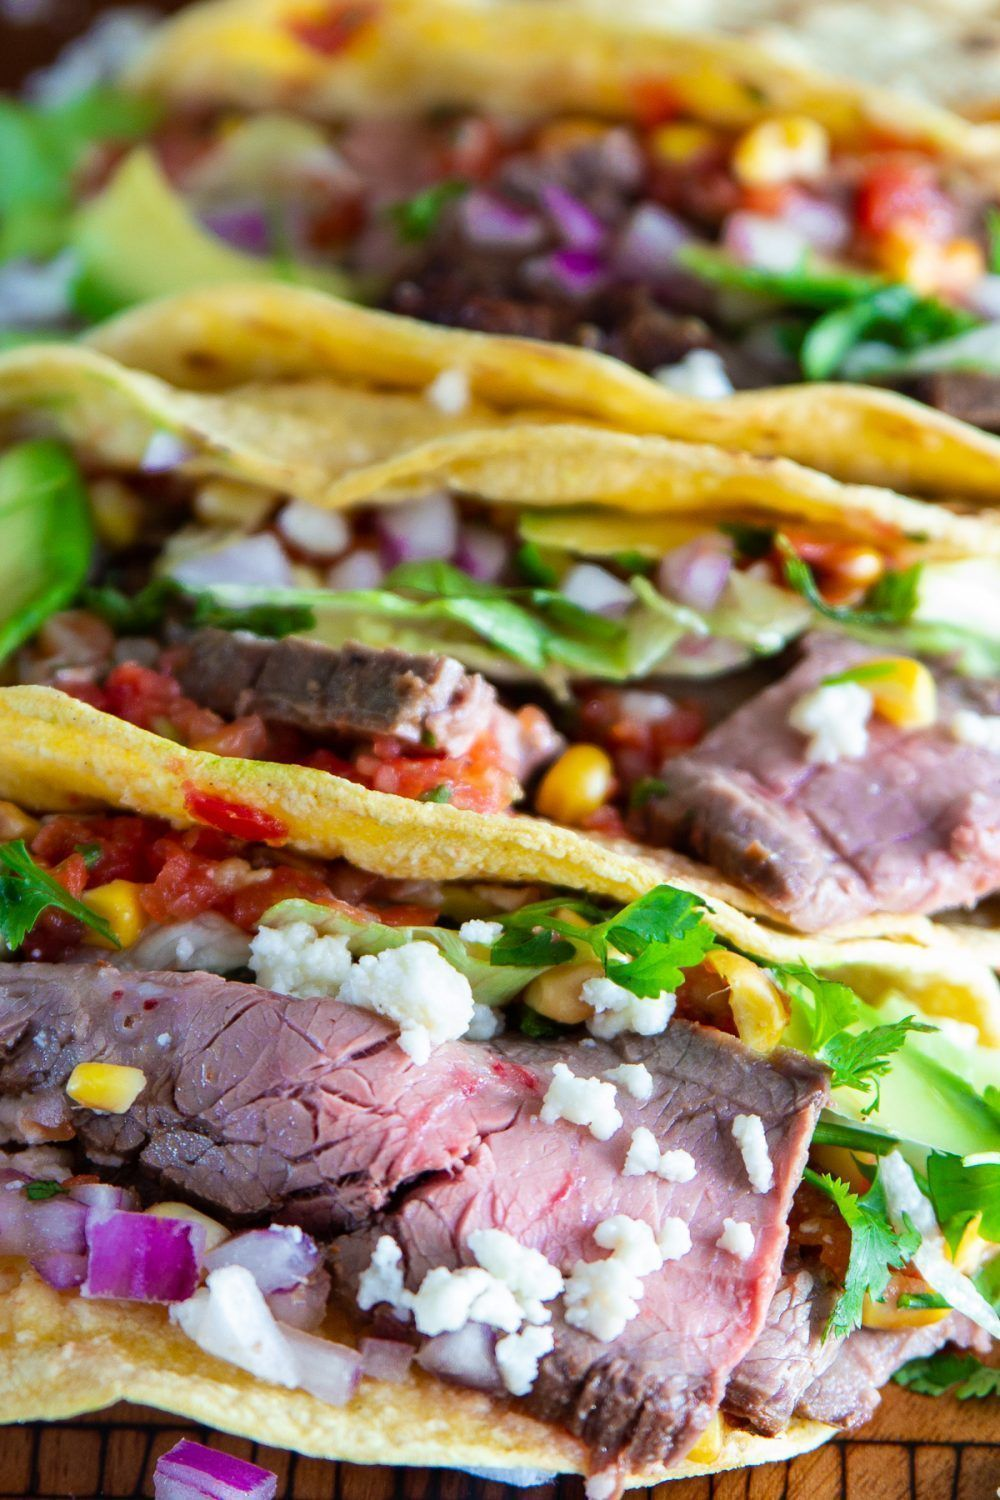 Delicious Flank Steak Taco Recipe #flanksteaktacos Delicious Flank Steak Taco Recipe #flanksteaktacos Delicious Flank Steak Taco Recipe #flanksteaktacos Delicious Flank Steak Taco Recipe #recipesforflanksteak Delicious Flank Steak Taco Recipe #flanksteaktacos Delicious Flank Steak Taco Recipe #flanksteaktacos Delicious Flank Steak Taco Recipe #flanksteaktacos Delicious Flank Steak Taco Recipe #flanksteaktacos Delicious Flank Steak Taco Recipe #flanksteaktacos Delicious Flank Steak Taco Recipe #f #recipesforflanksteak